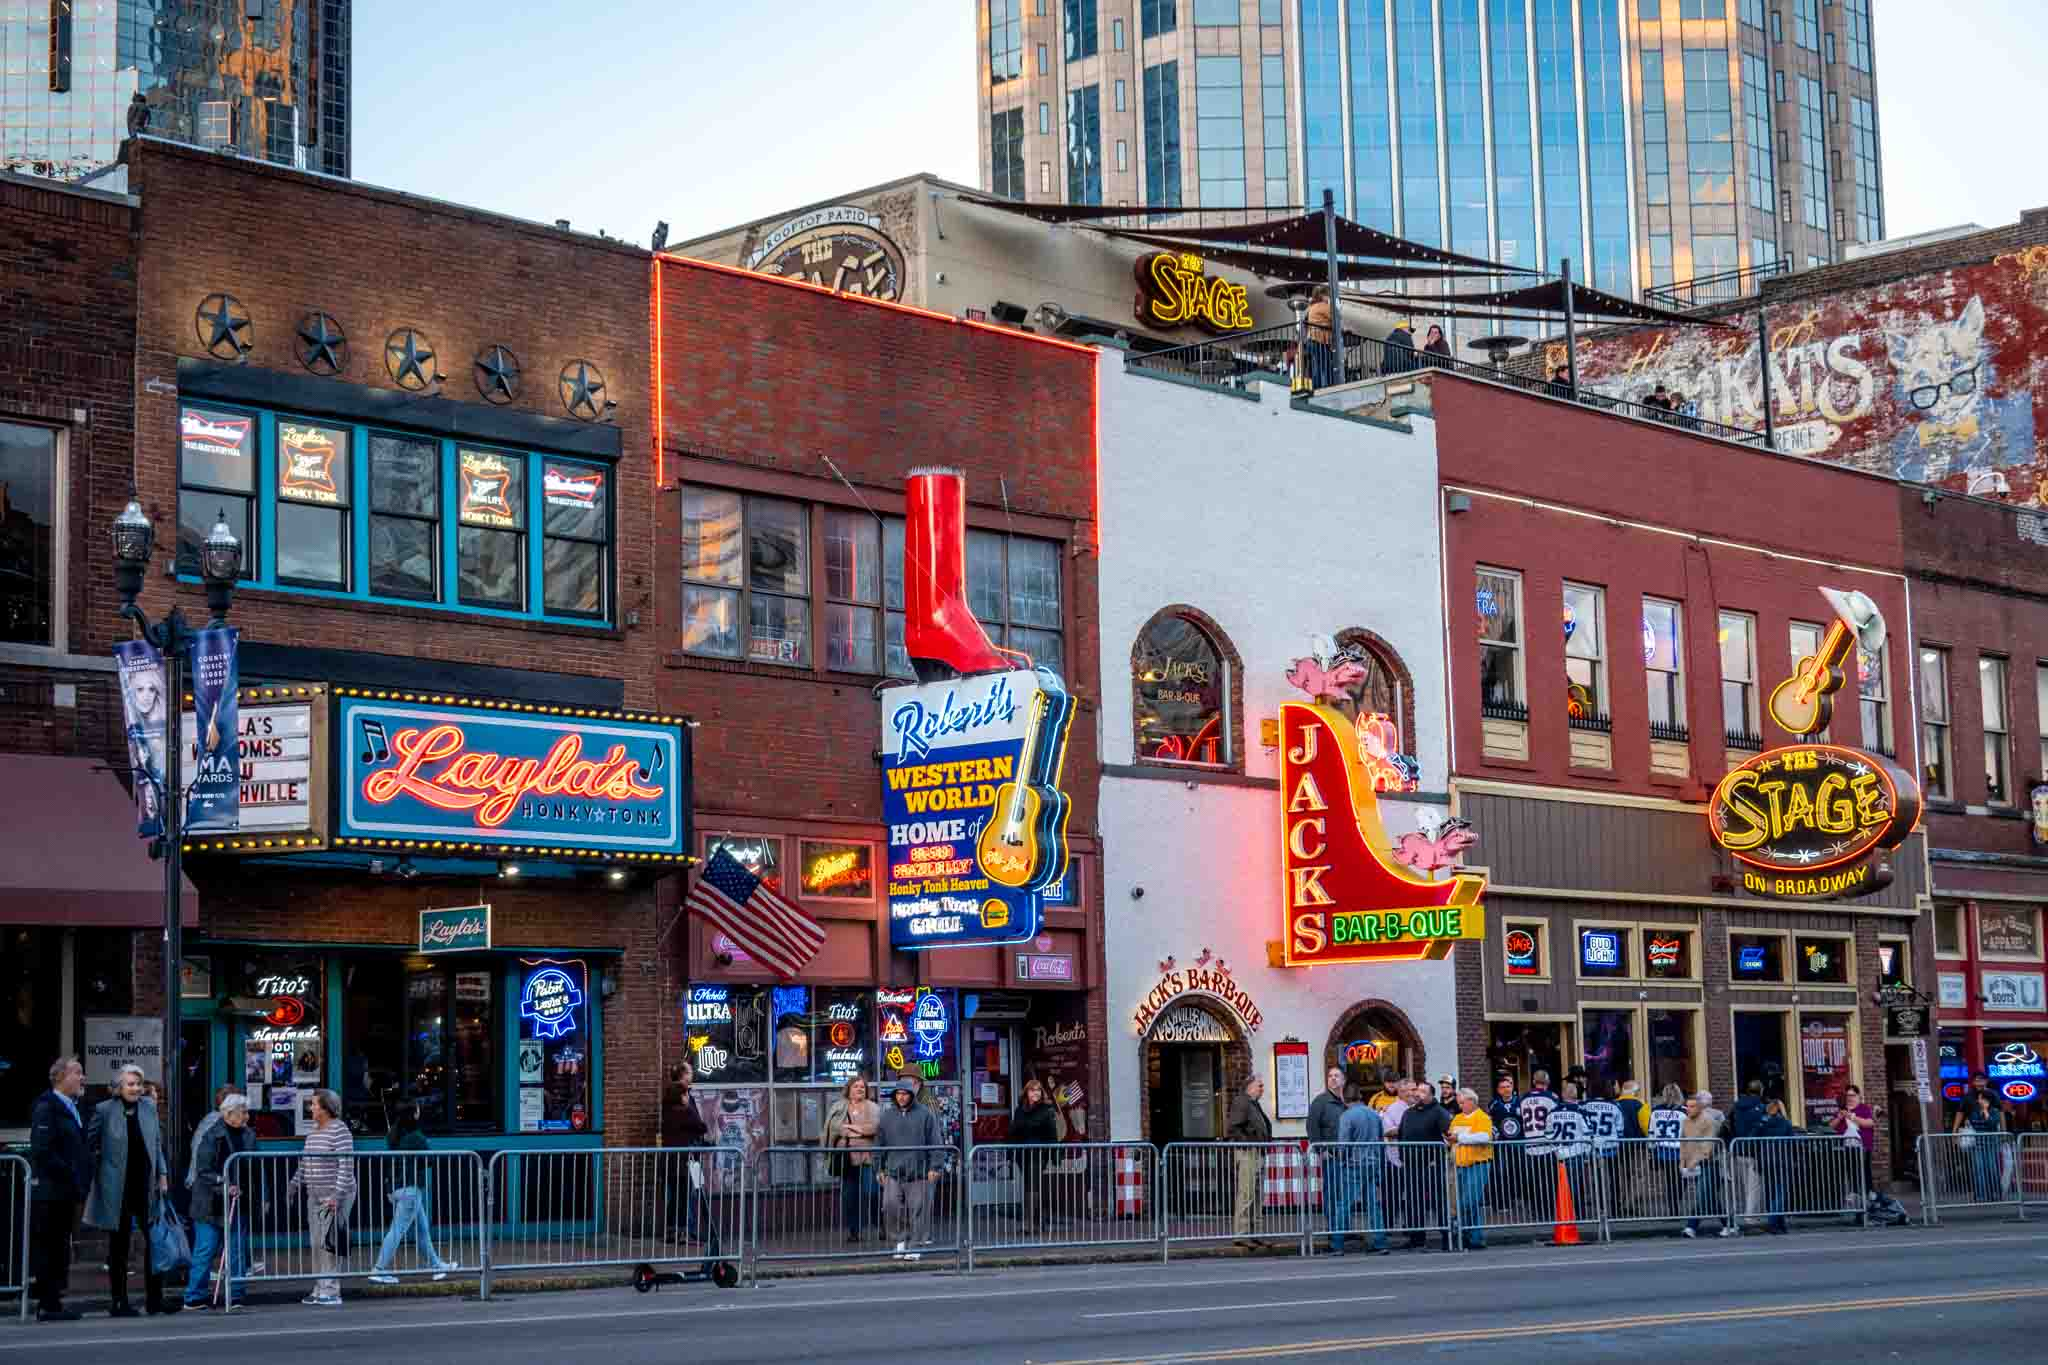 Exteriors and neon signs on a street of honky tonks and bars